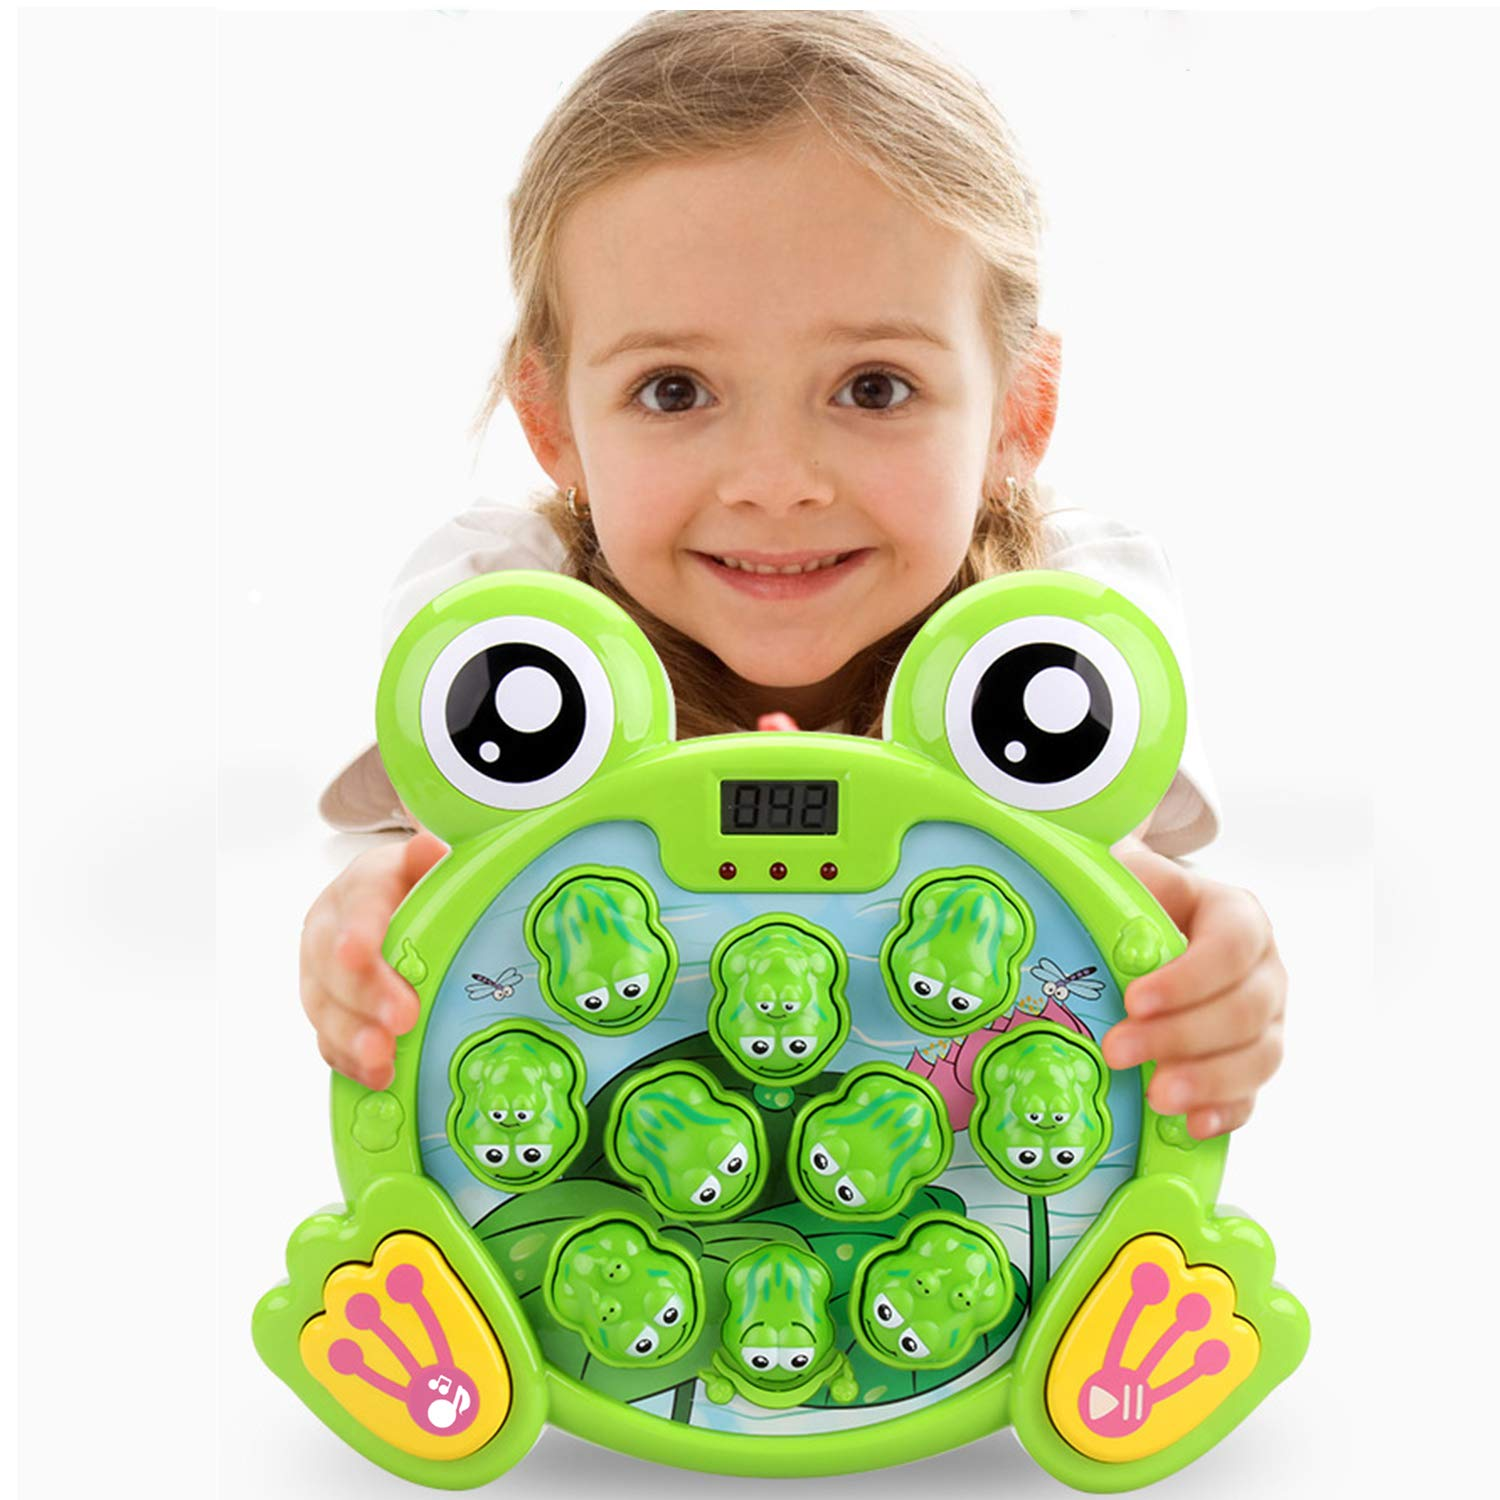 Girls,2 Hammers Included,Toy for Birthday /& Christmas Active Learning Fun Gift for Age 2-8 Years Old Kids Boys Whack a Frog Activity Game,Early Developmental Toy A Frogs Game